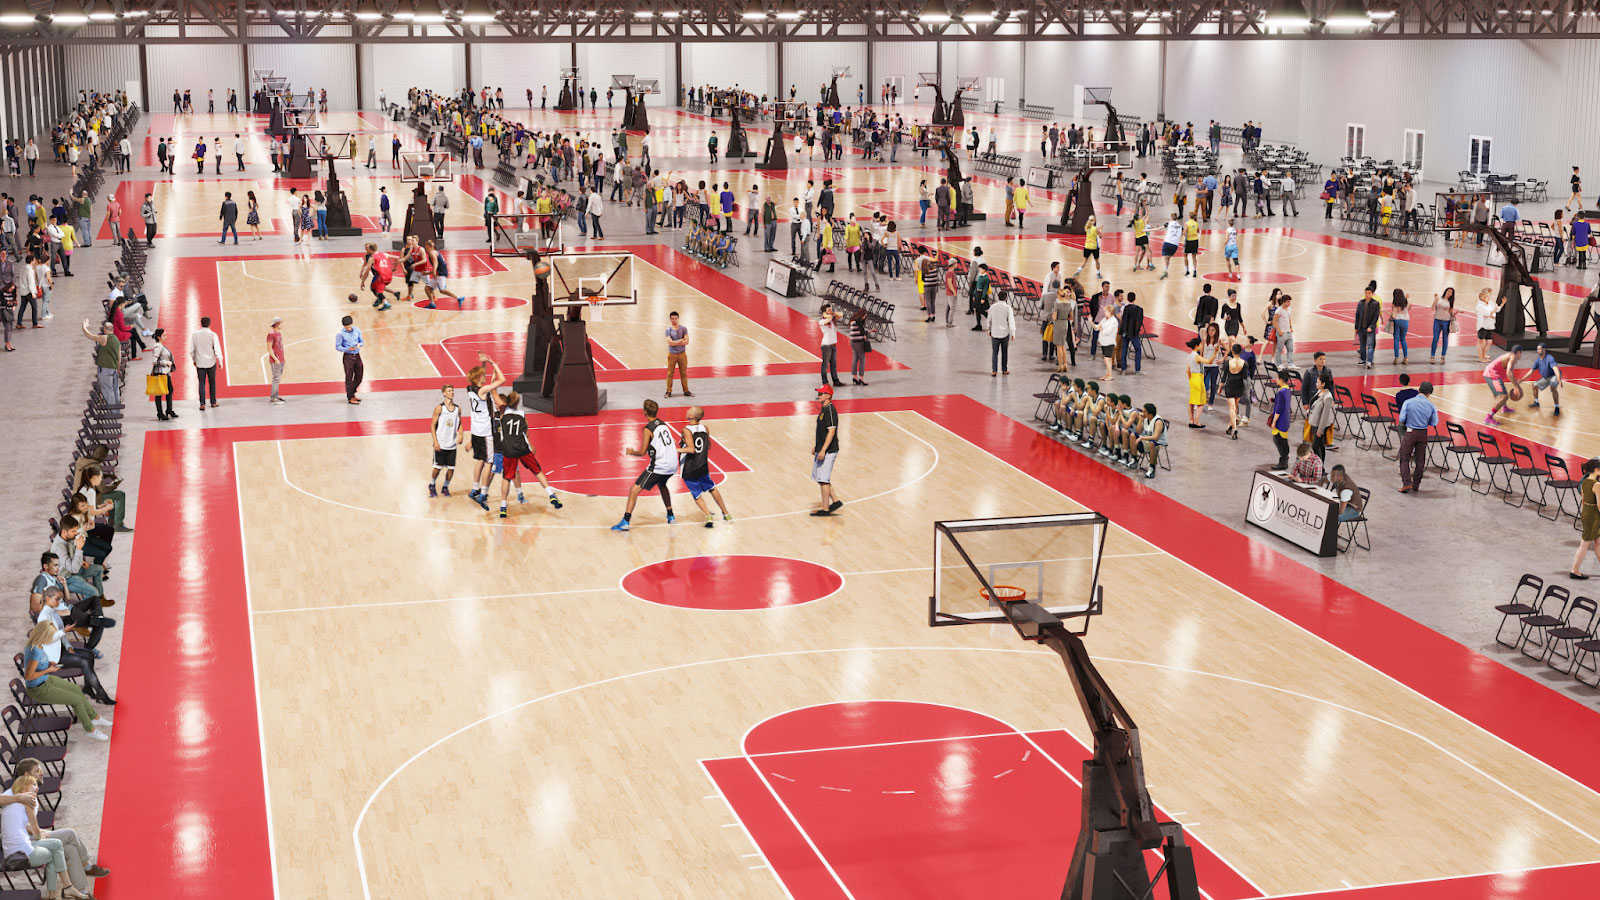 Basketball game in climate-controlled center